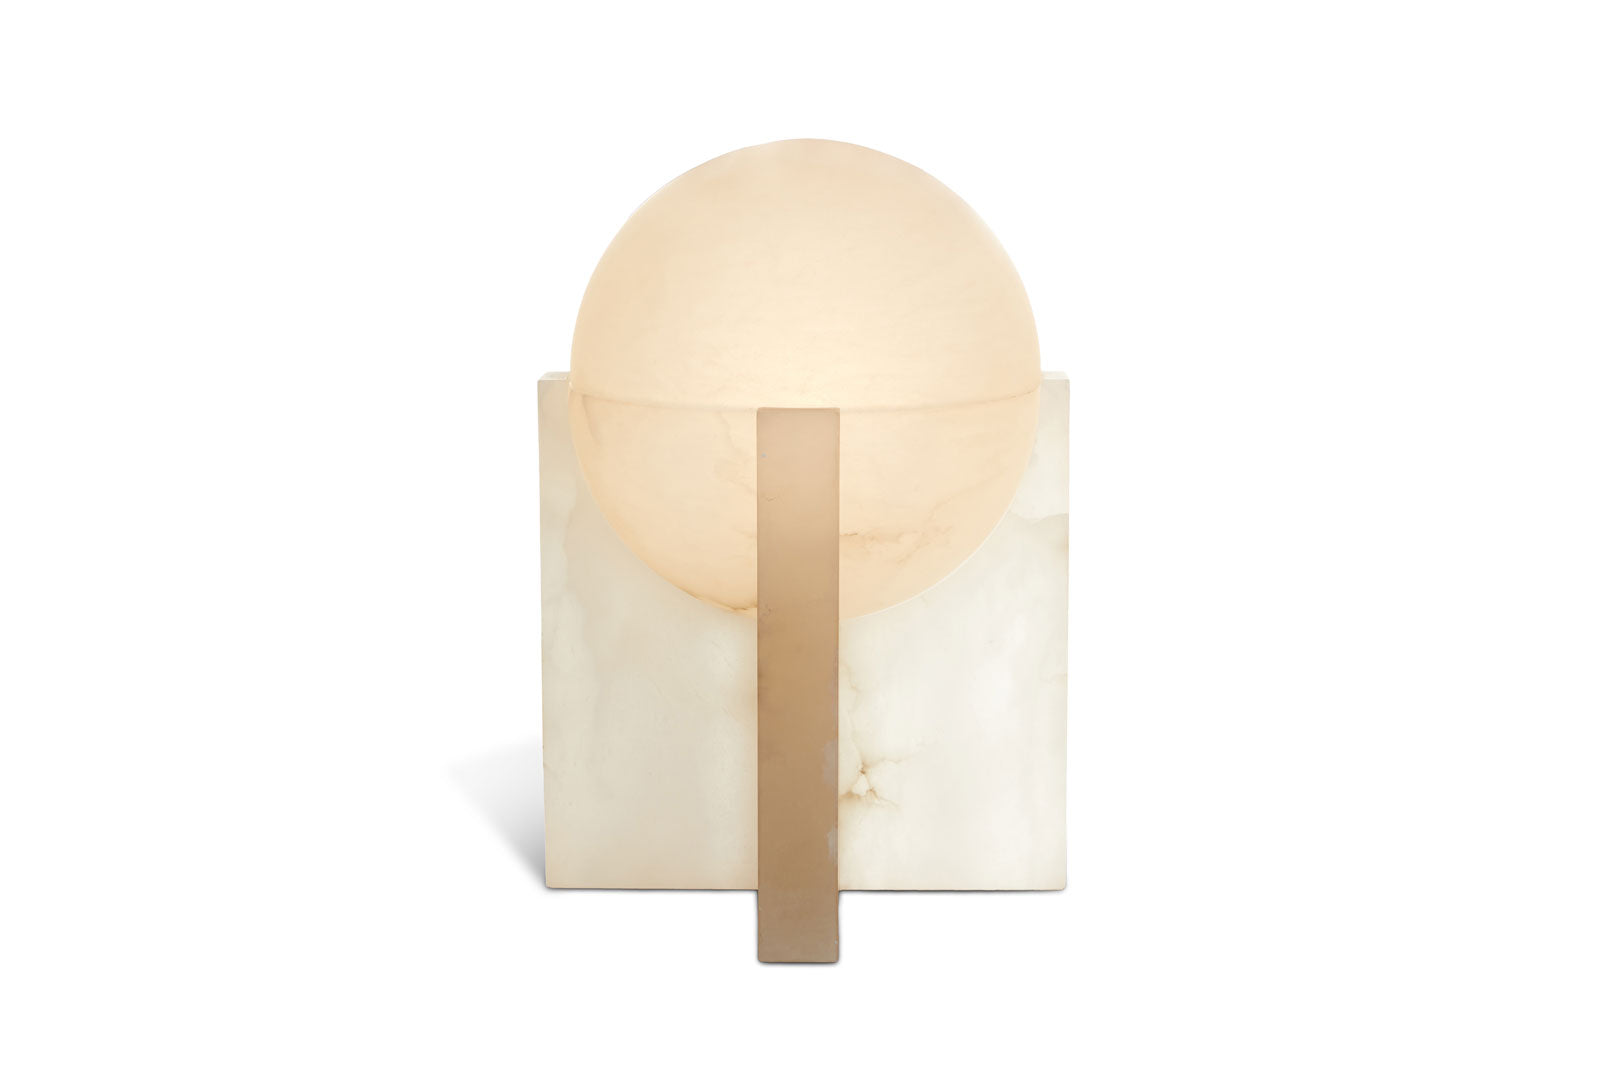 Pierre Chareau Sphere Table Lamp